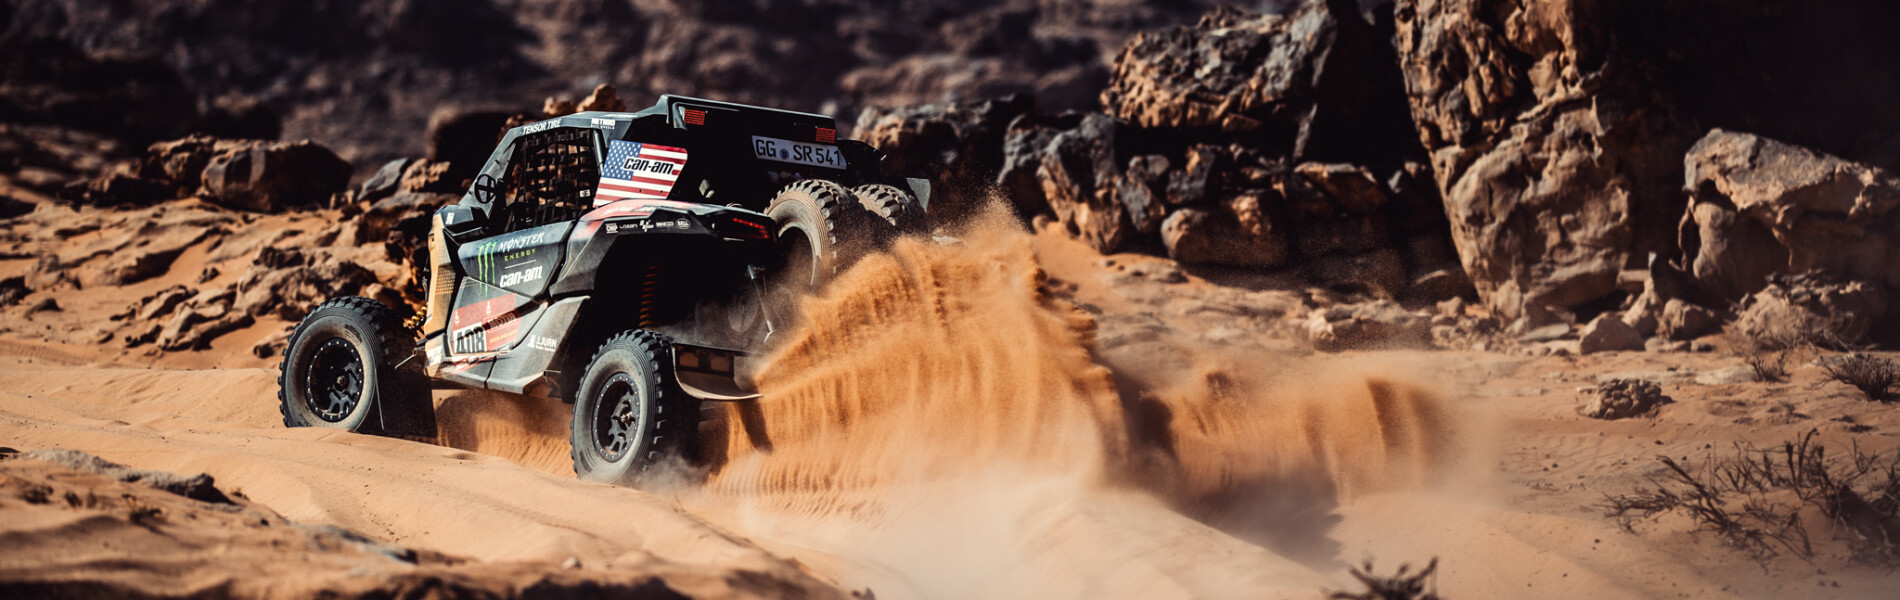 Images from the stage 9 of the 2021 Dakar